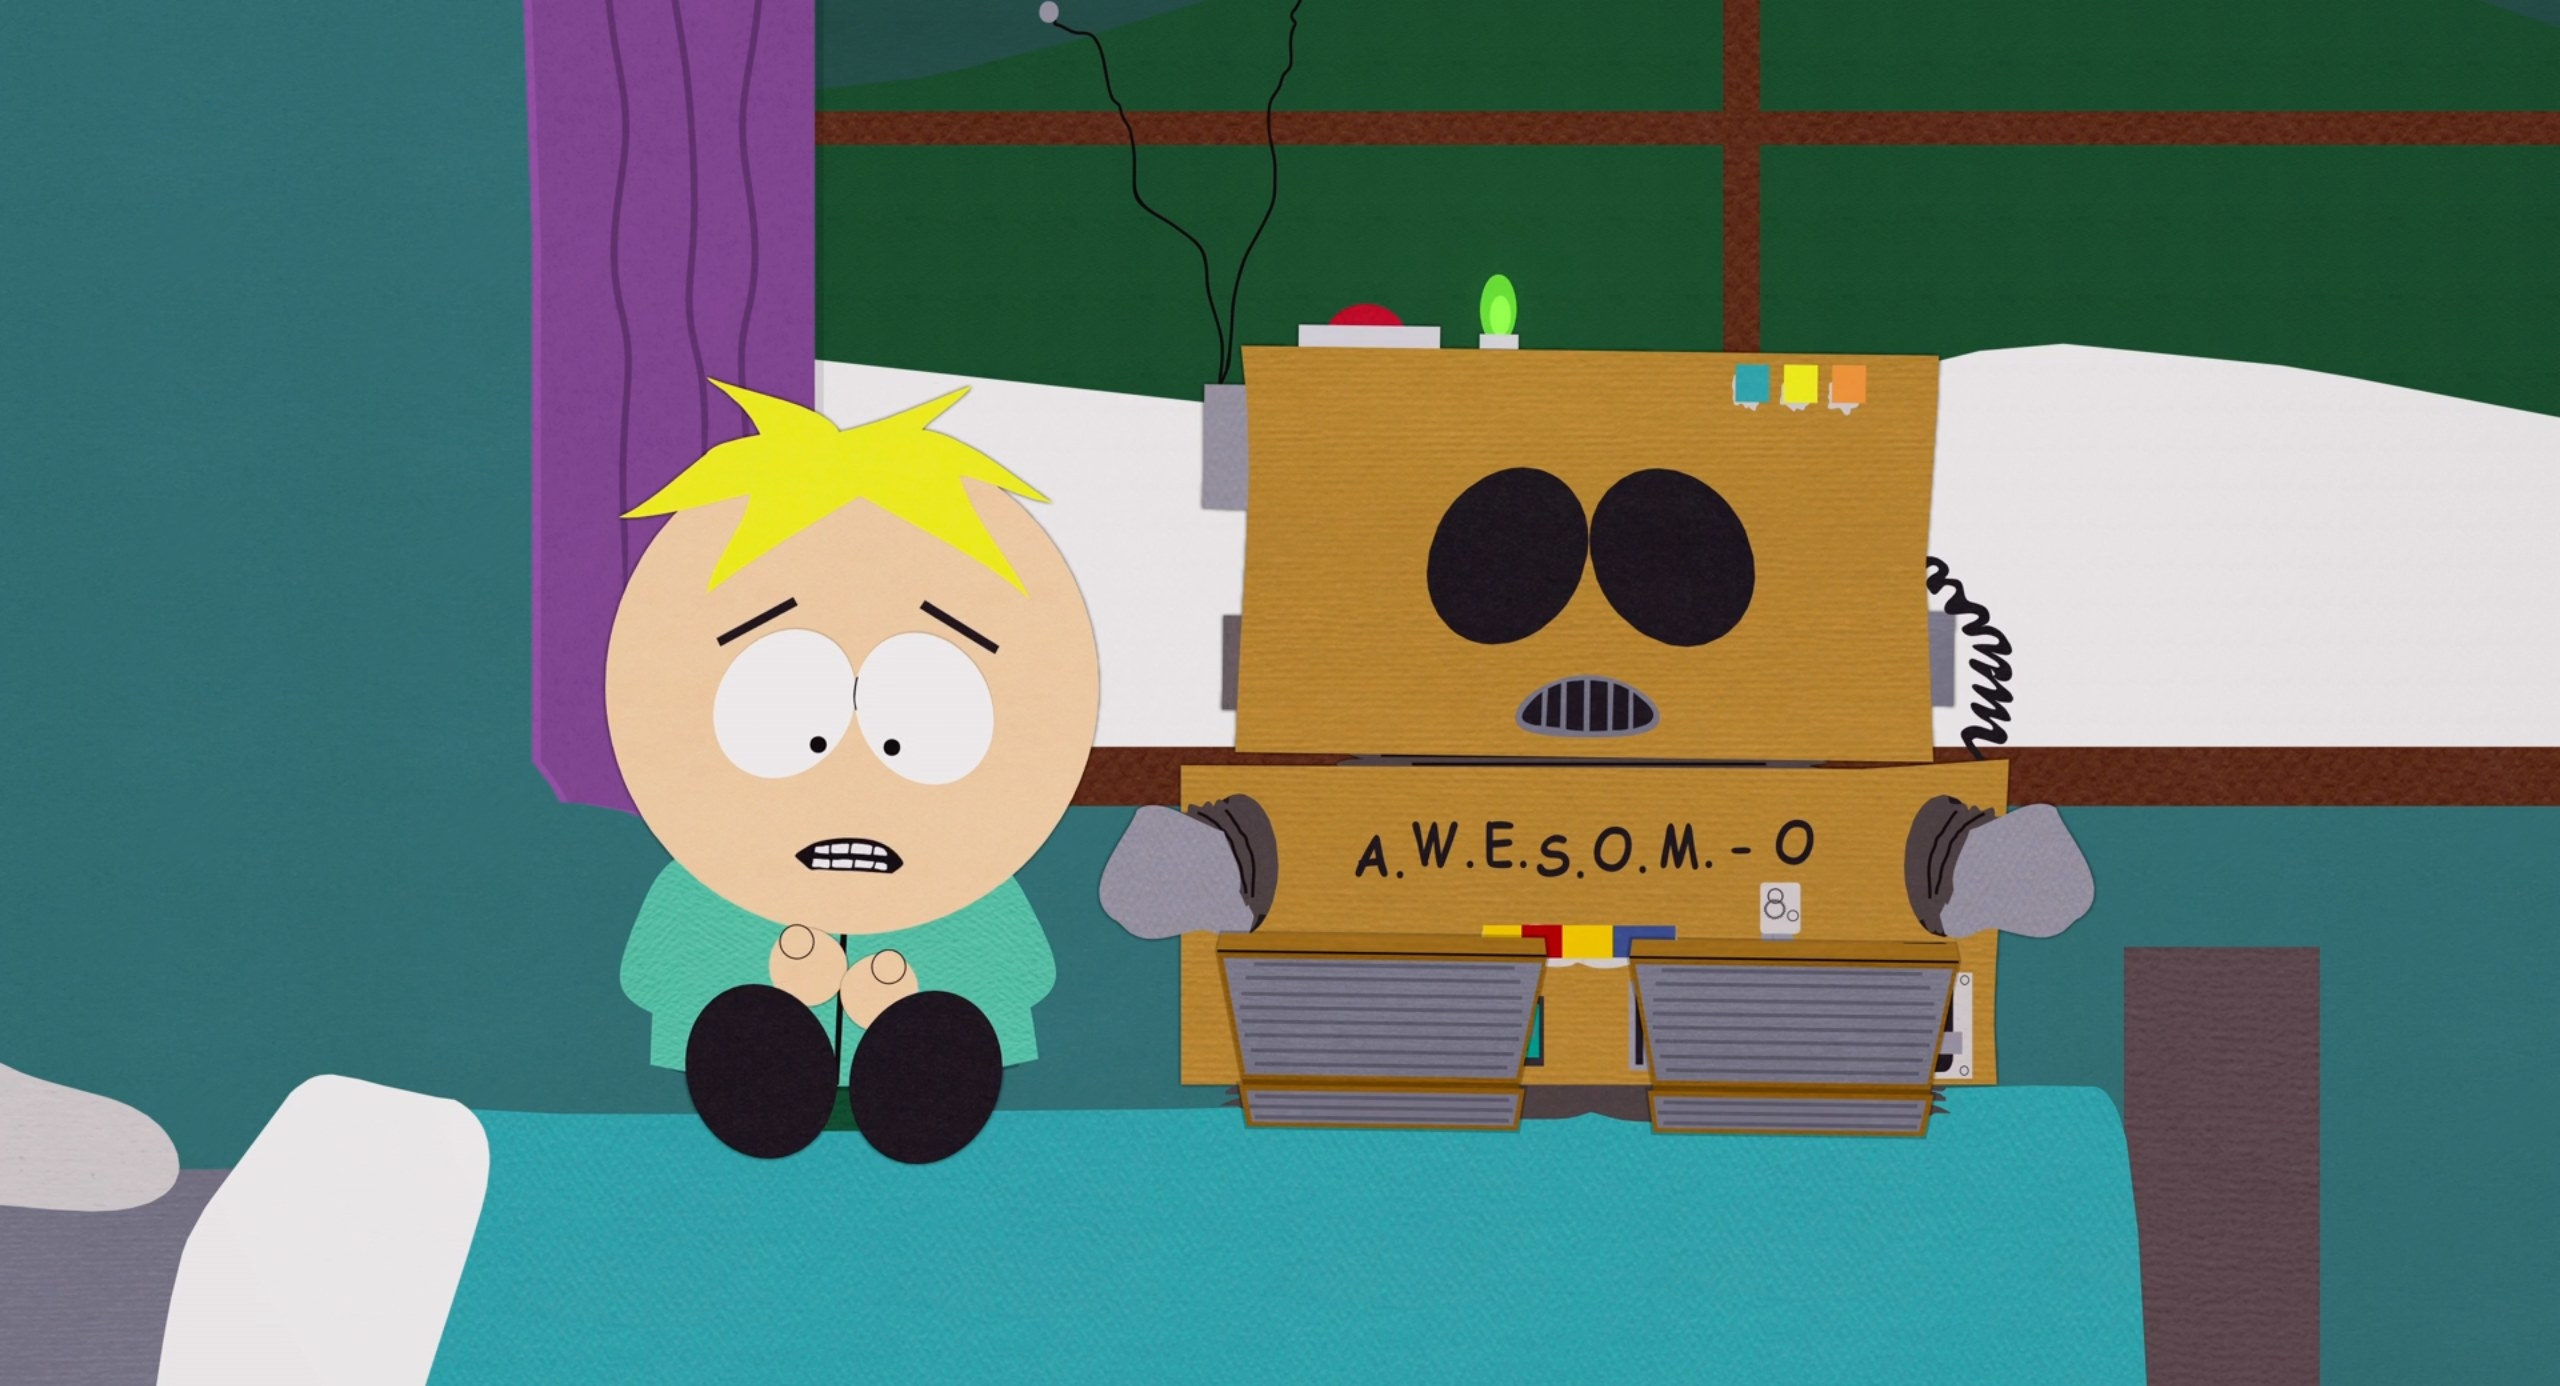 Awesom-O and Butters have a heart-to-heart